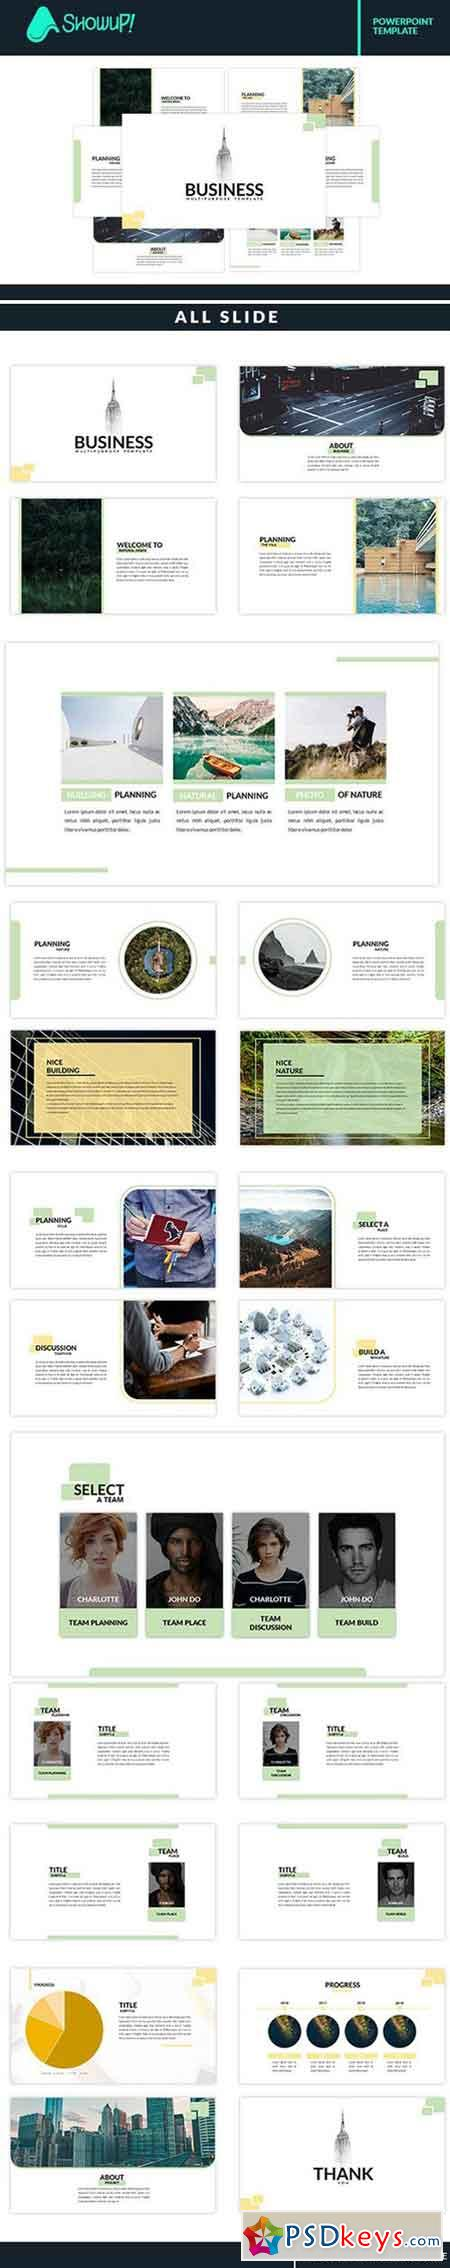 Business Minimal Powerpoint Template 1872558